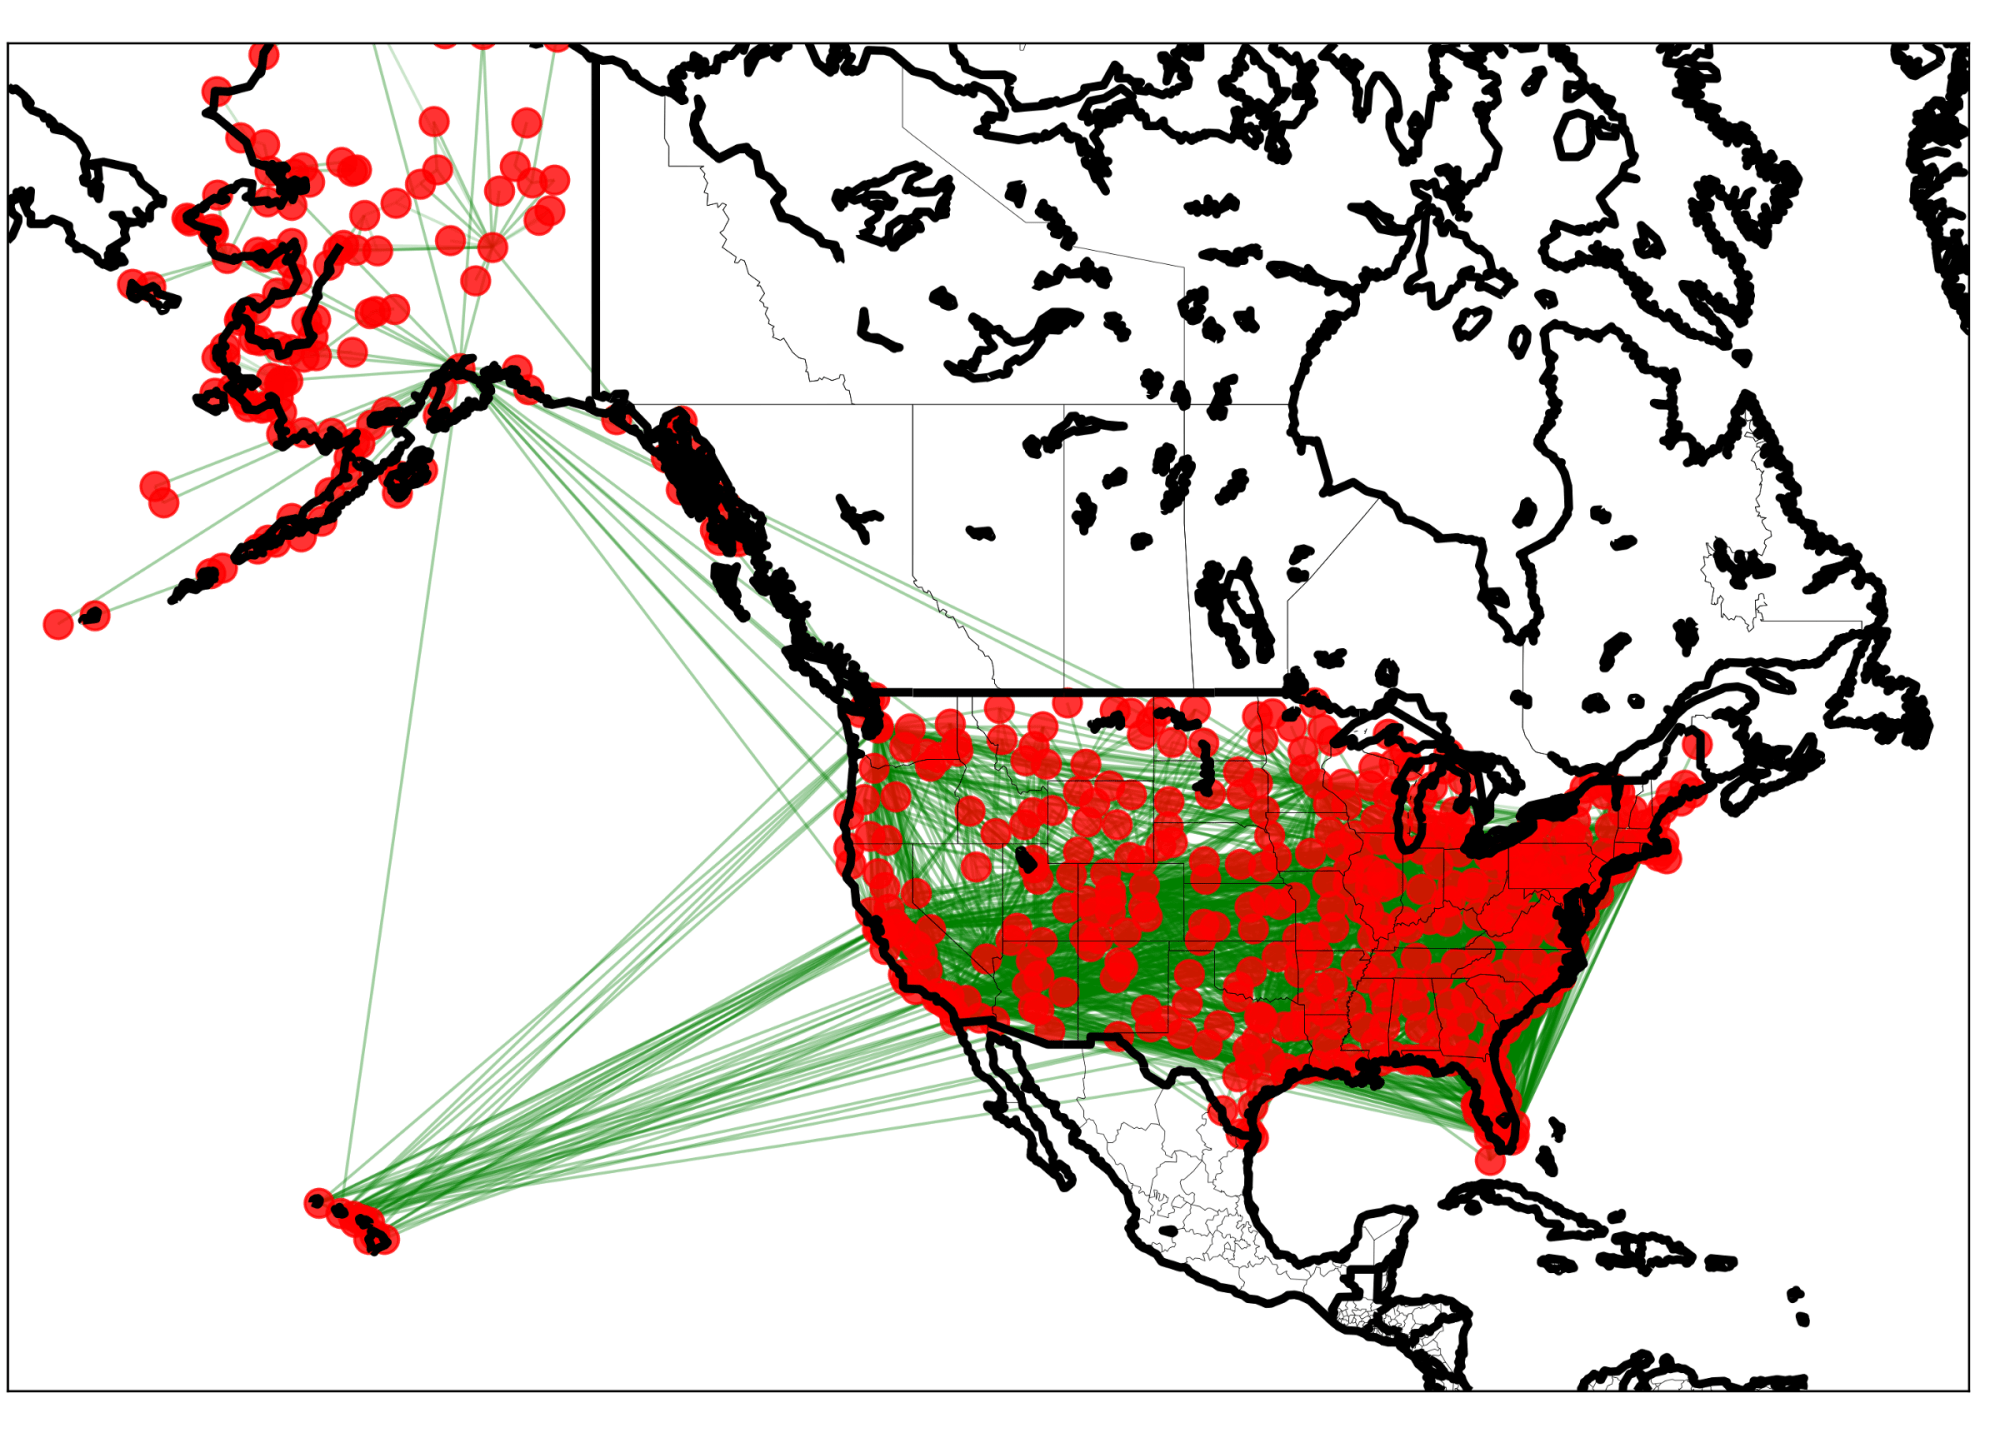 hight resolution of basic graph drawn by networkx and basemap